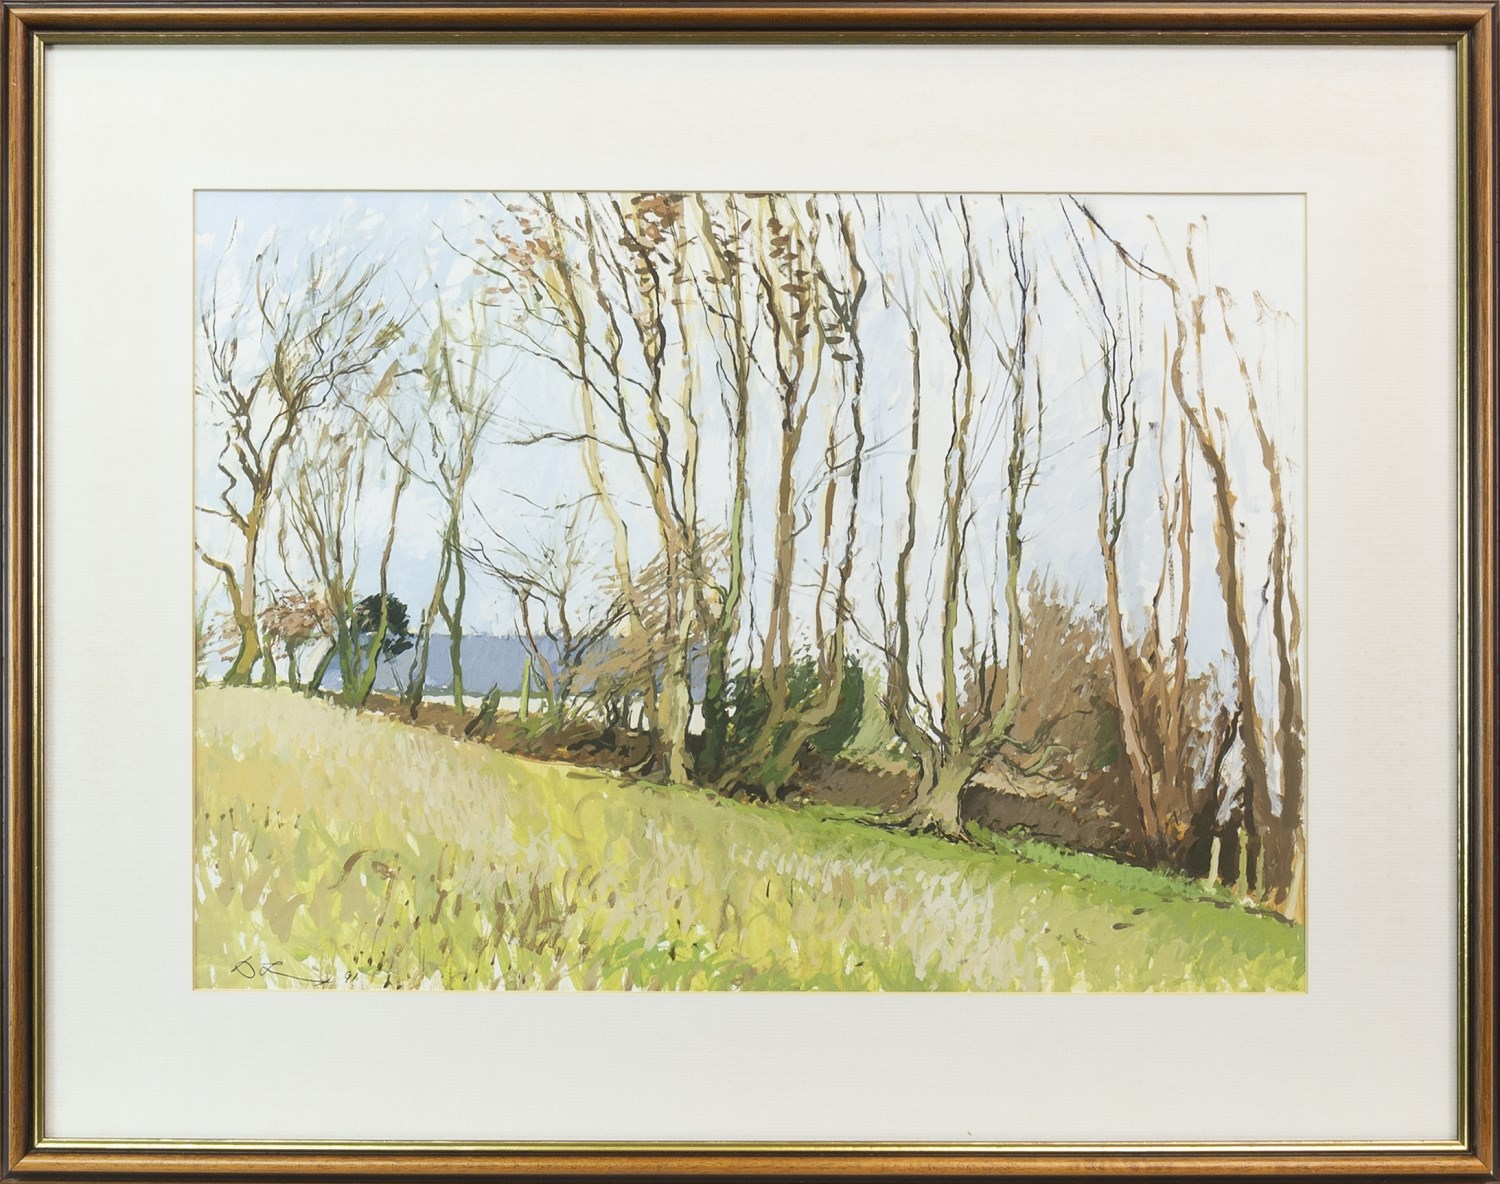 Lot 64 - WEST HEADS GARDEN, AN OIL ON BOARD BY DOUGLAS LENNOX